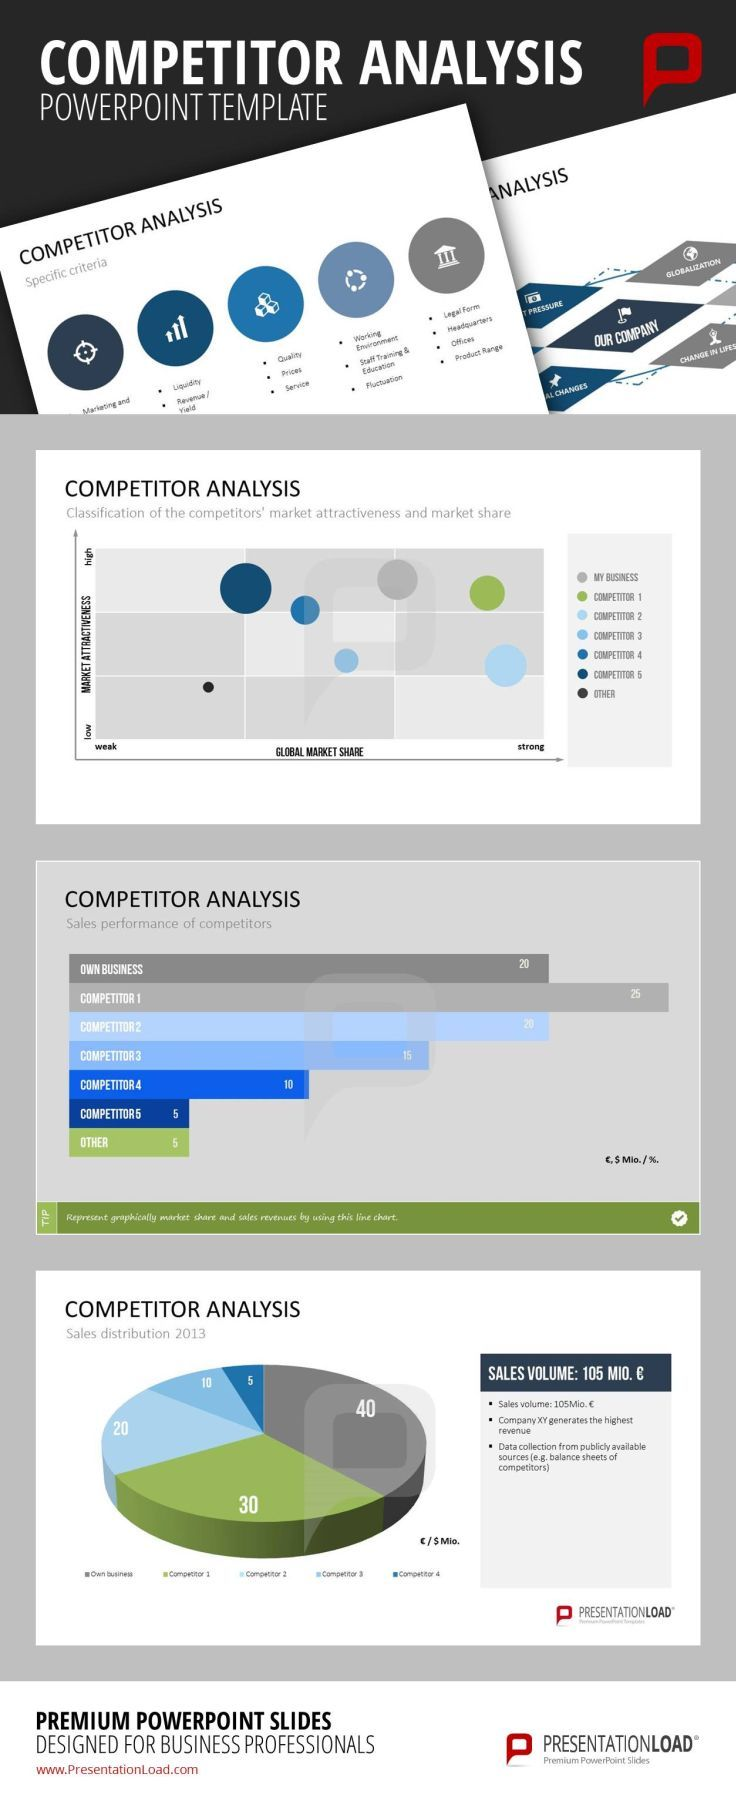 Competitor Analysis PowerPoint Template Competitor